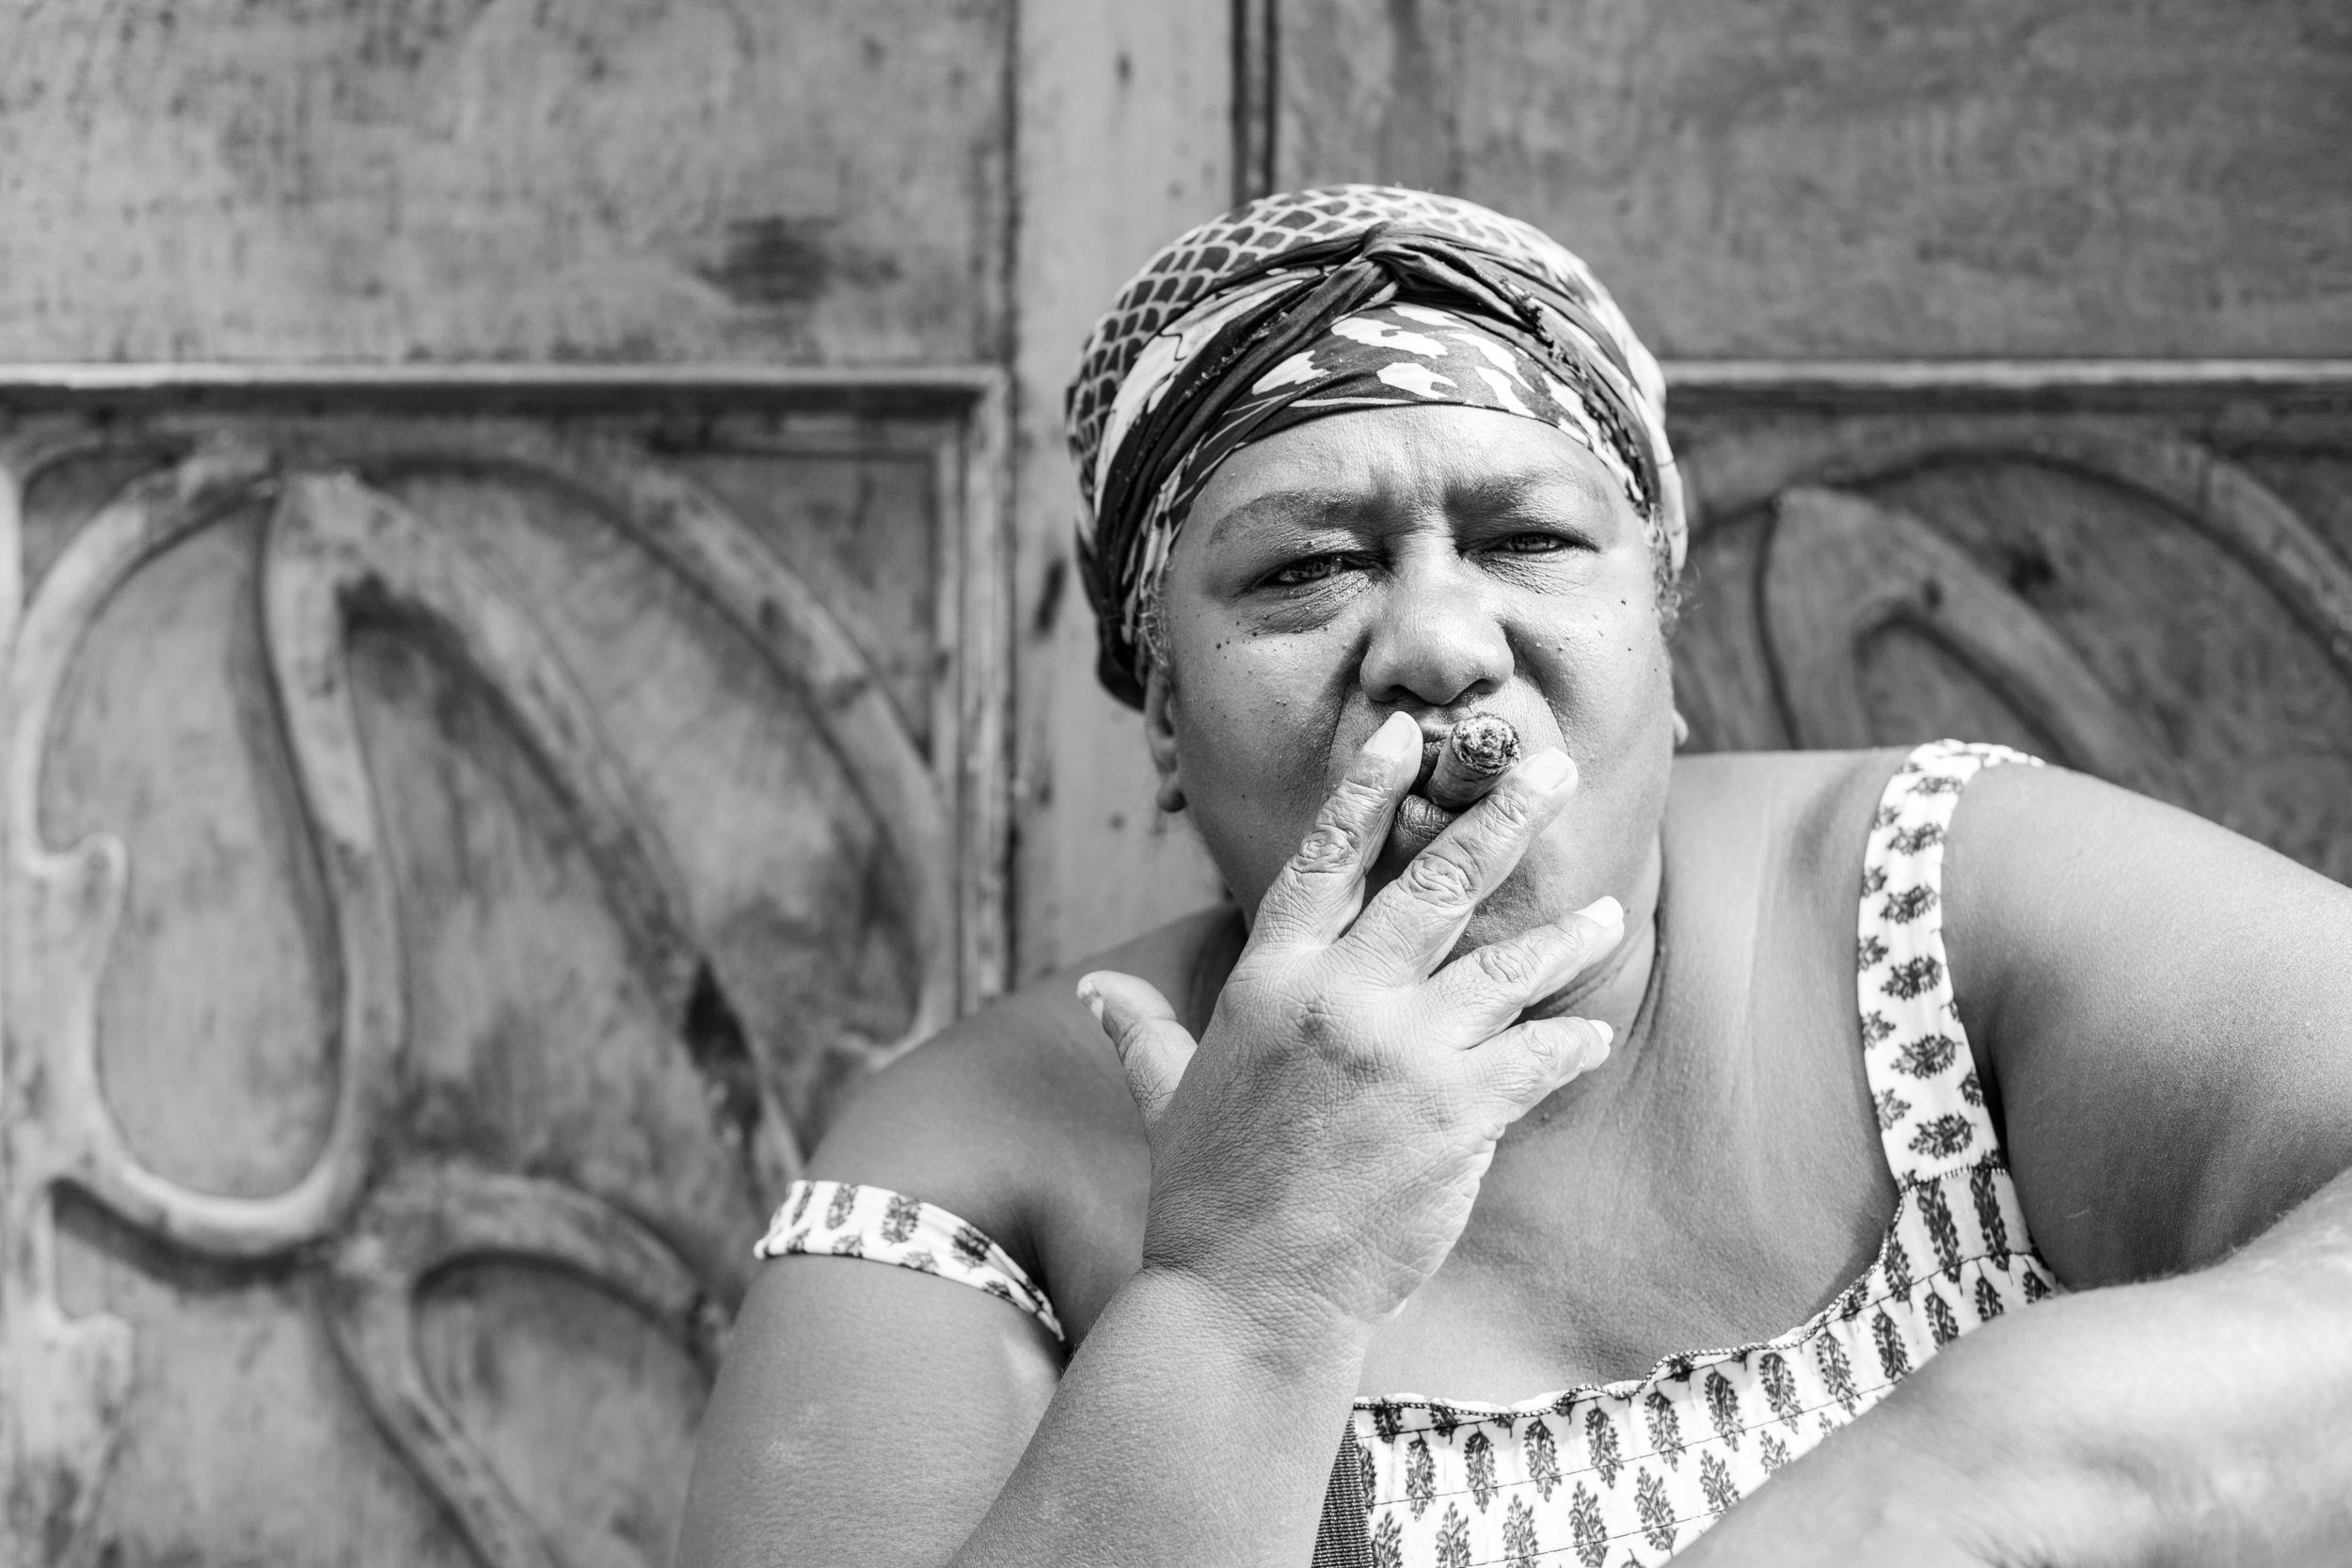 A black and white portrait of a curvy Cuban lady smoking a cigar.